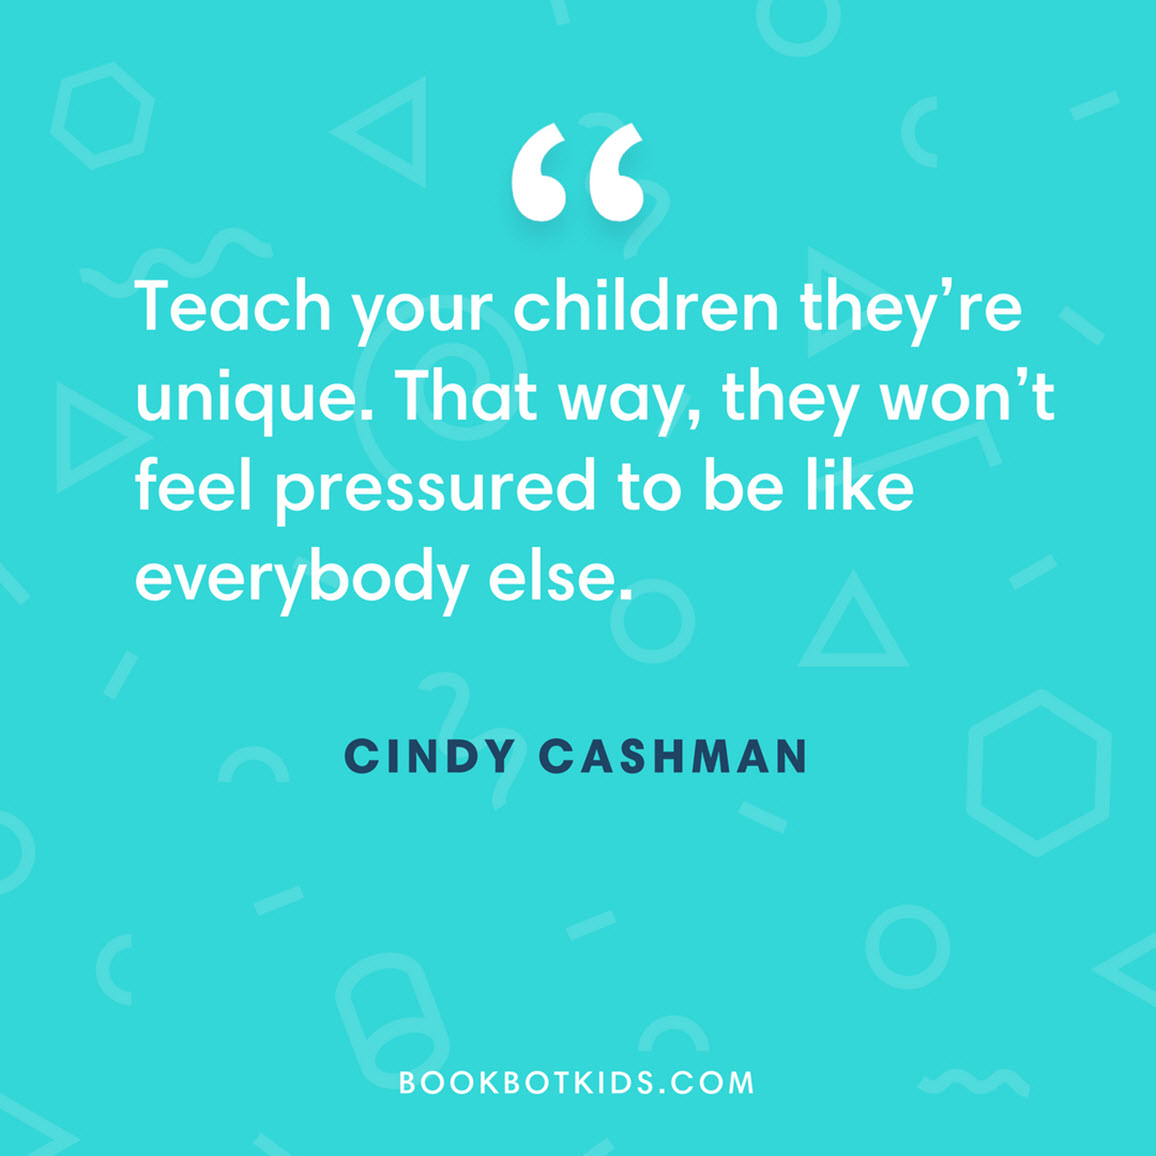 Teach your children they're unique. That way, they won't feel pressured to be like everybody else. – Cindy Cashman